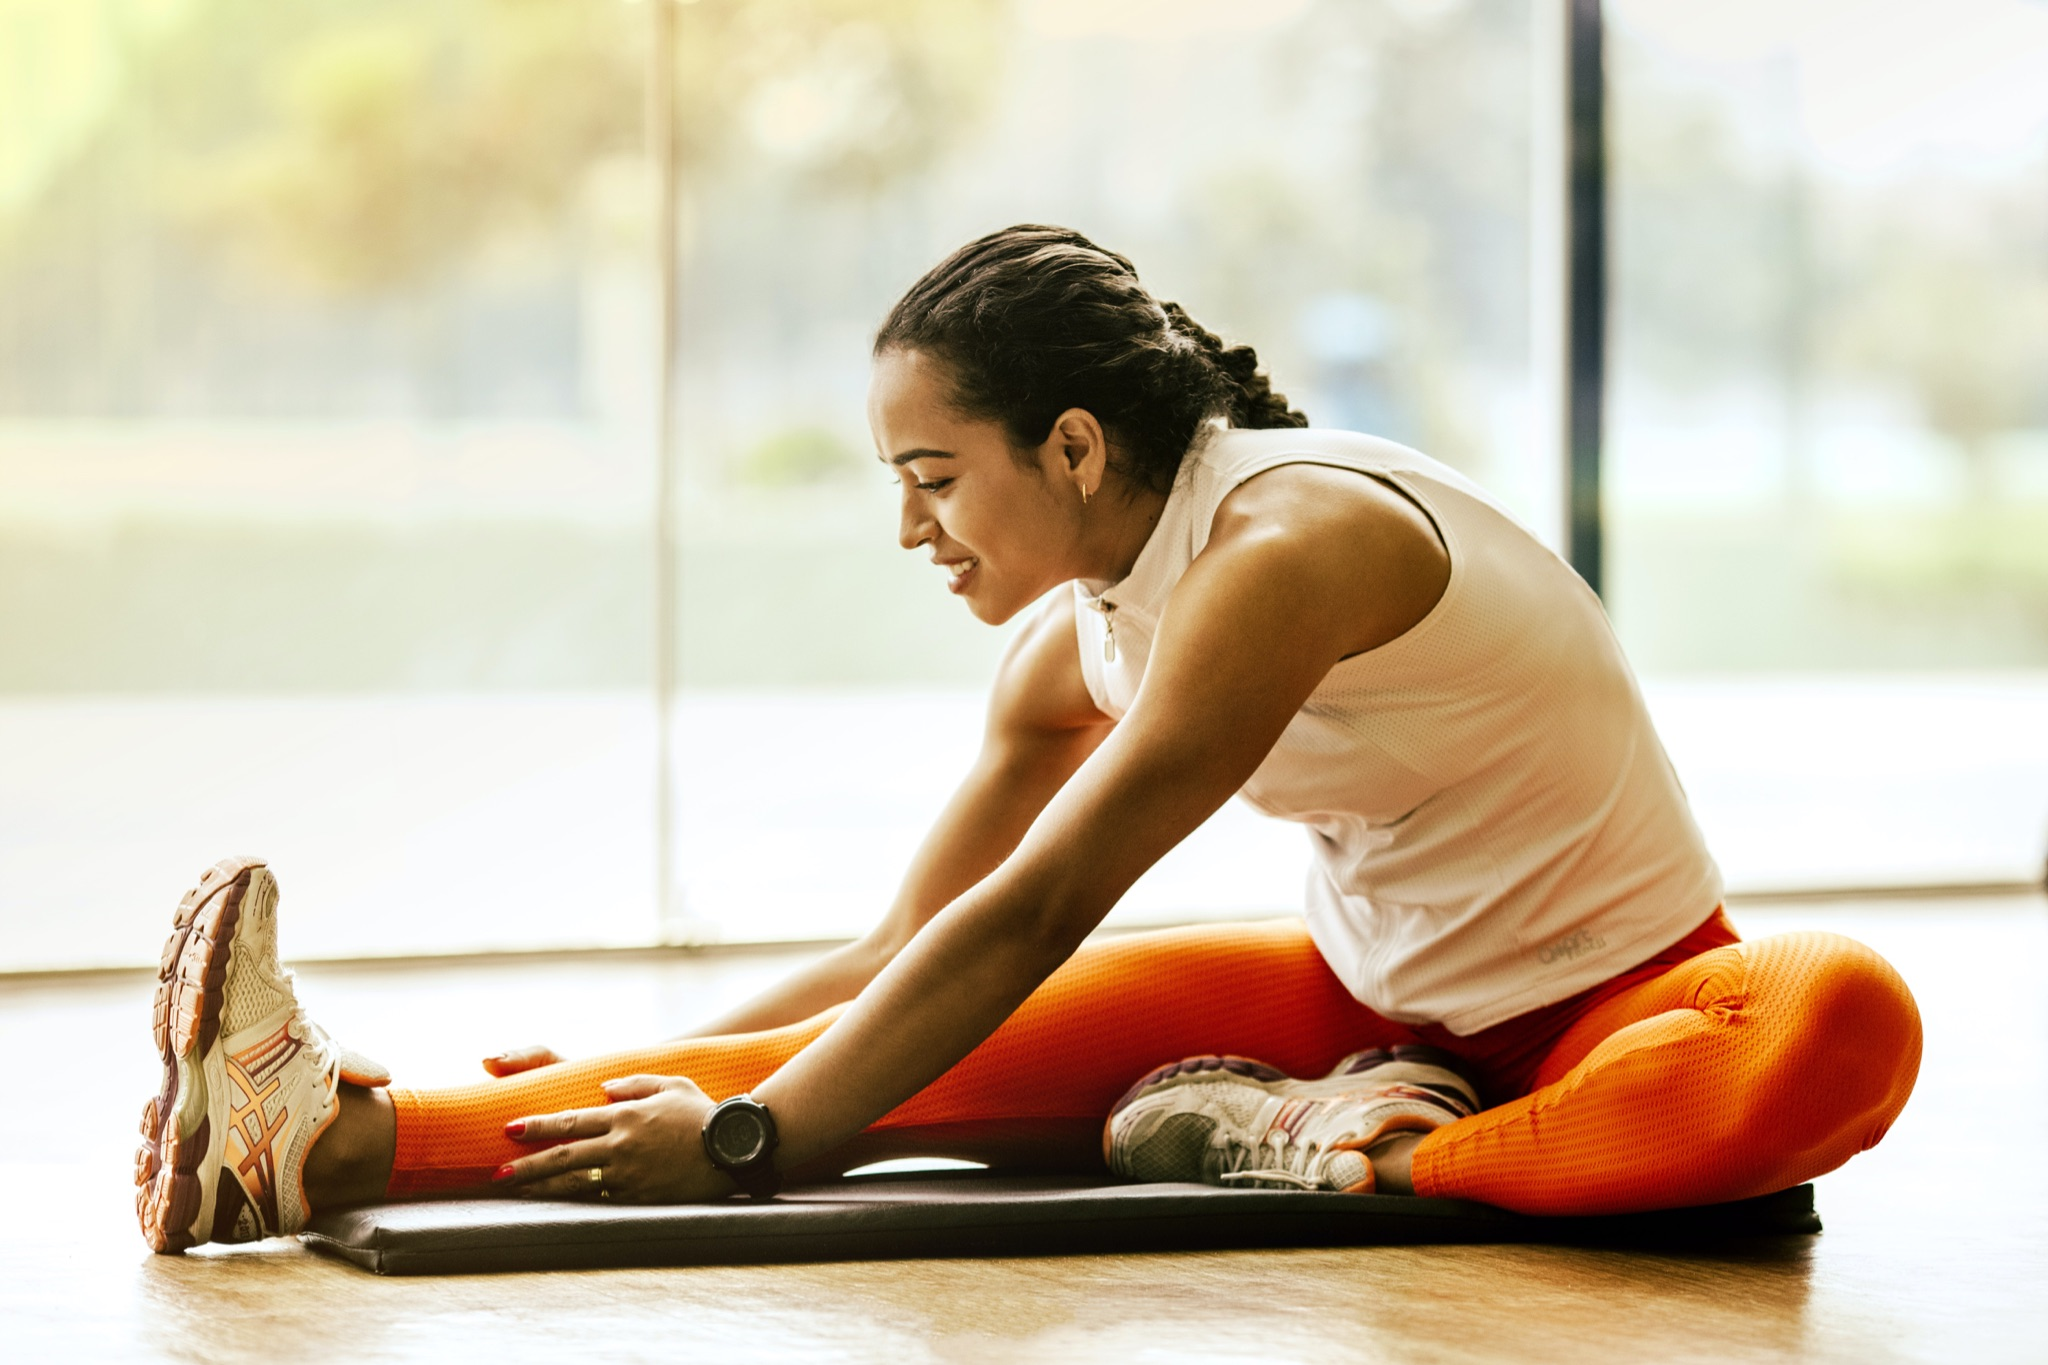 Better Muscle Recovery Reduces Soreness & Encourages You To Workout